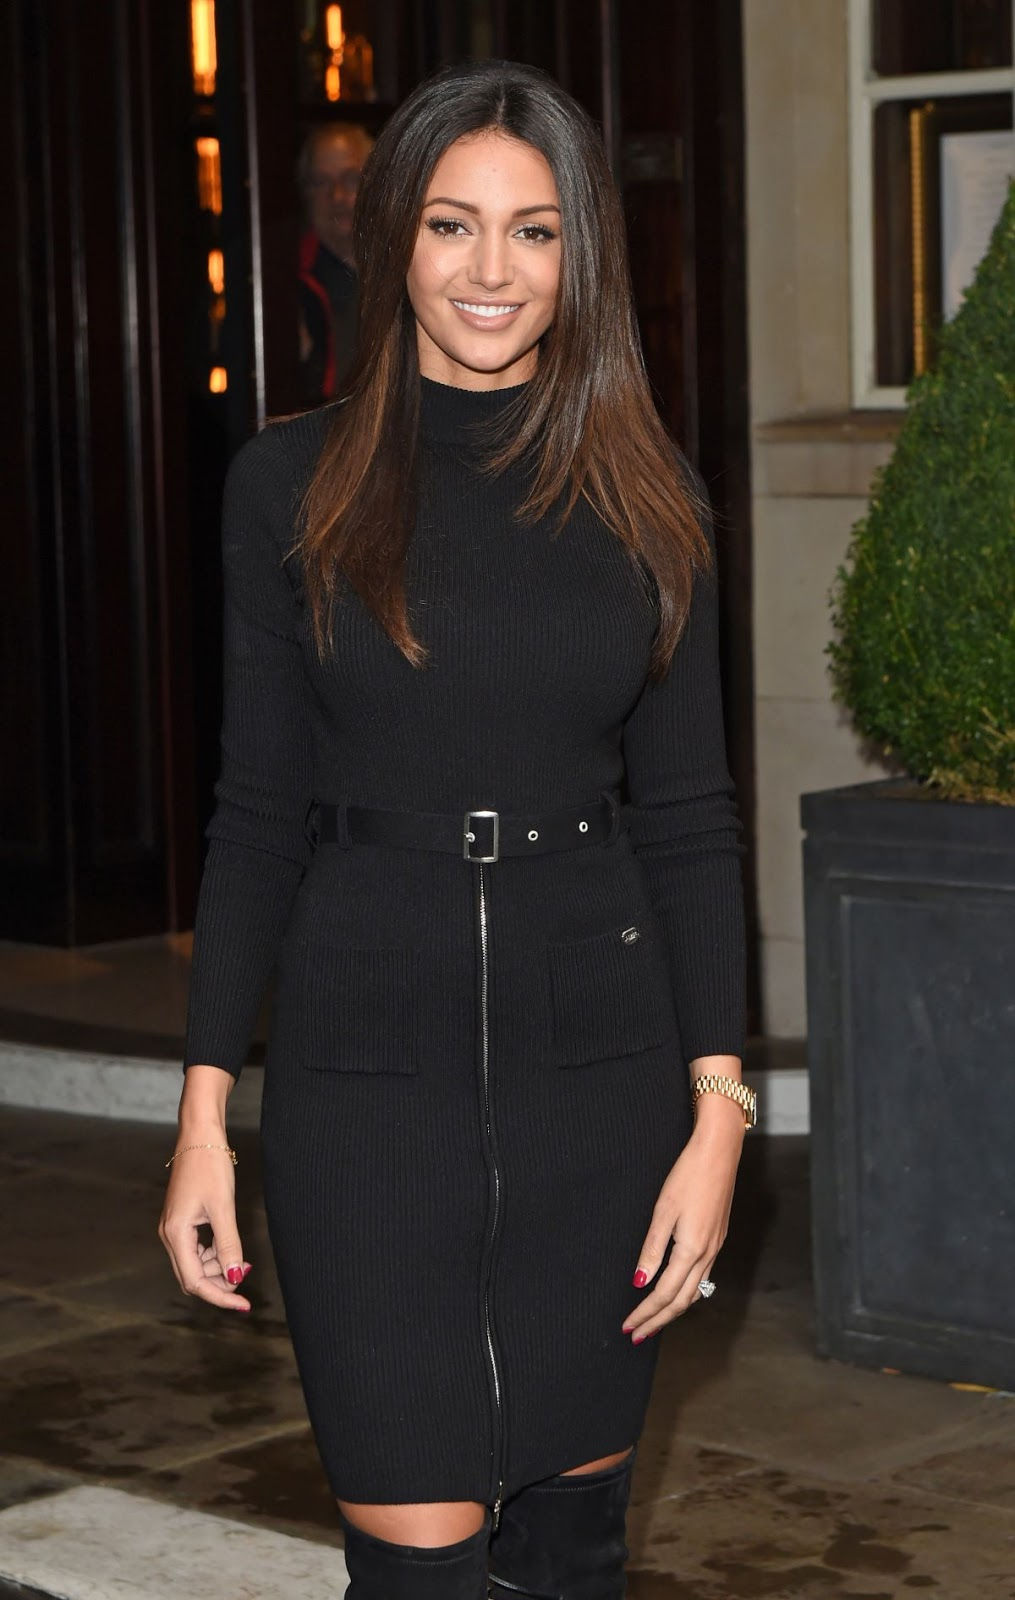 Michelle Keegan At Lipsy Love Michelle Keegan Preview in London - HD Photos